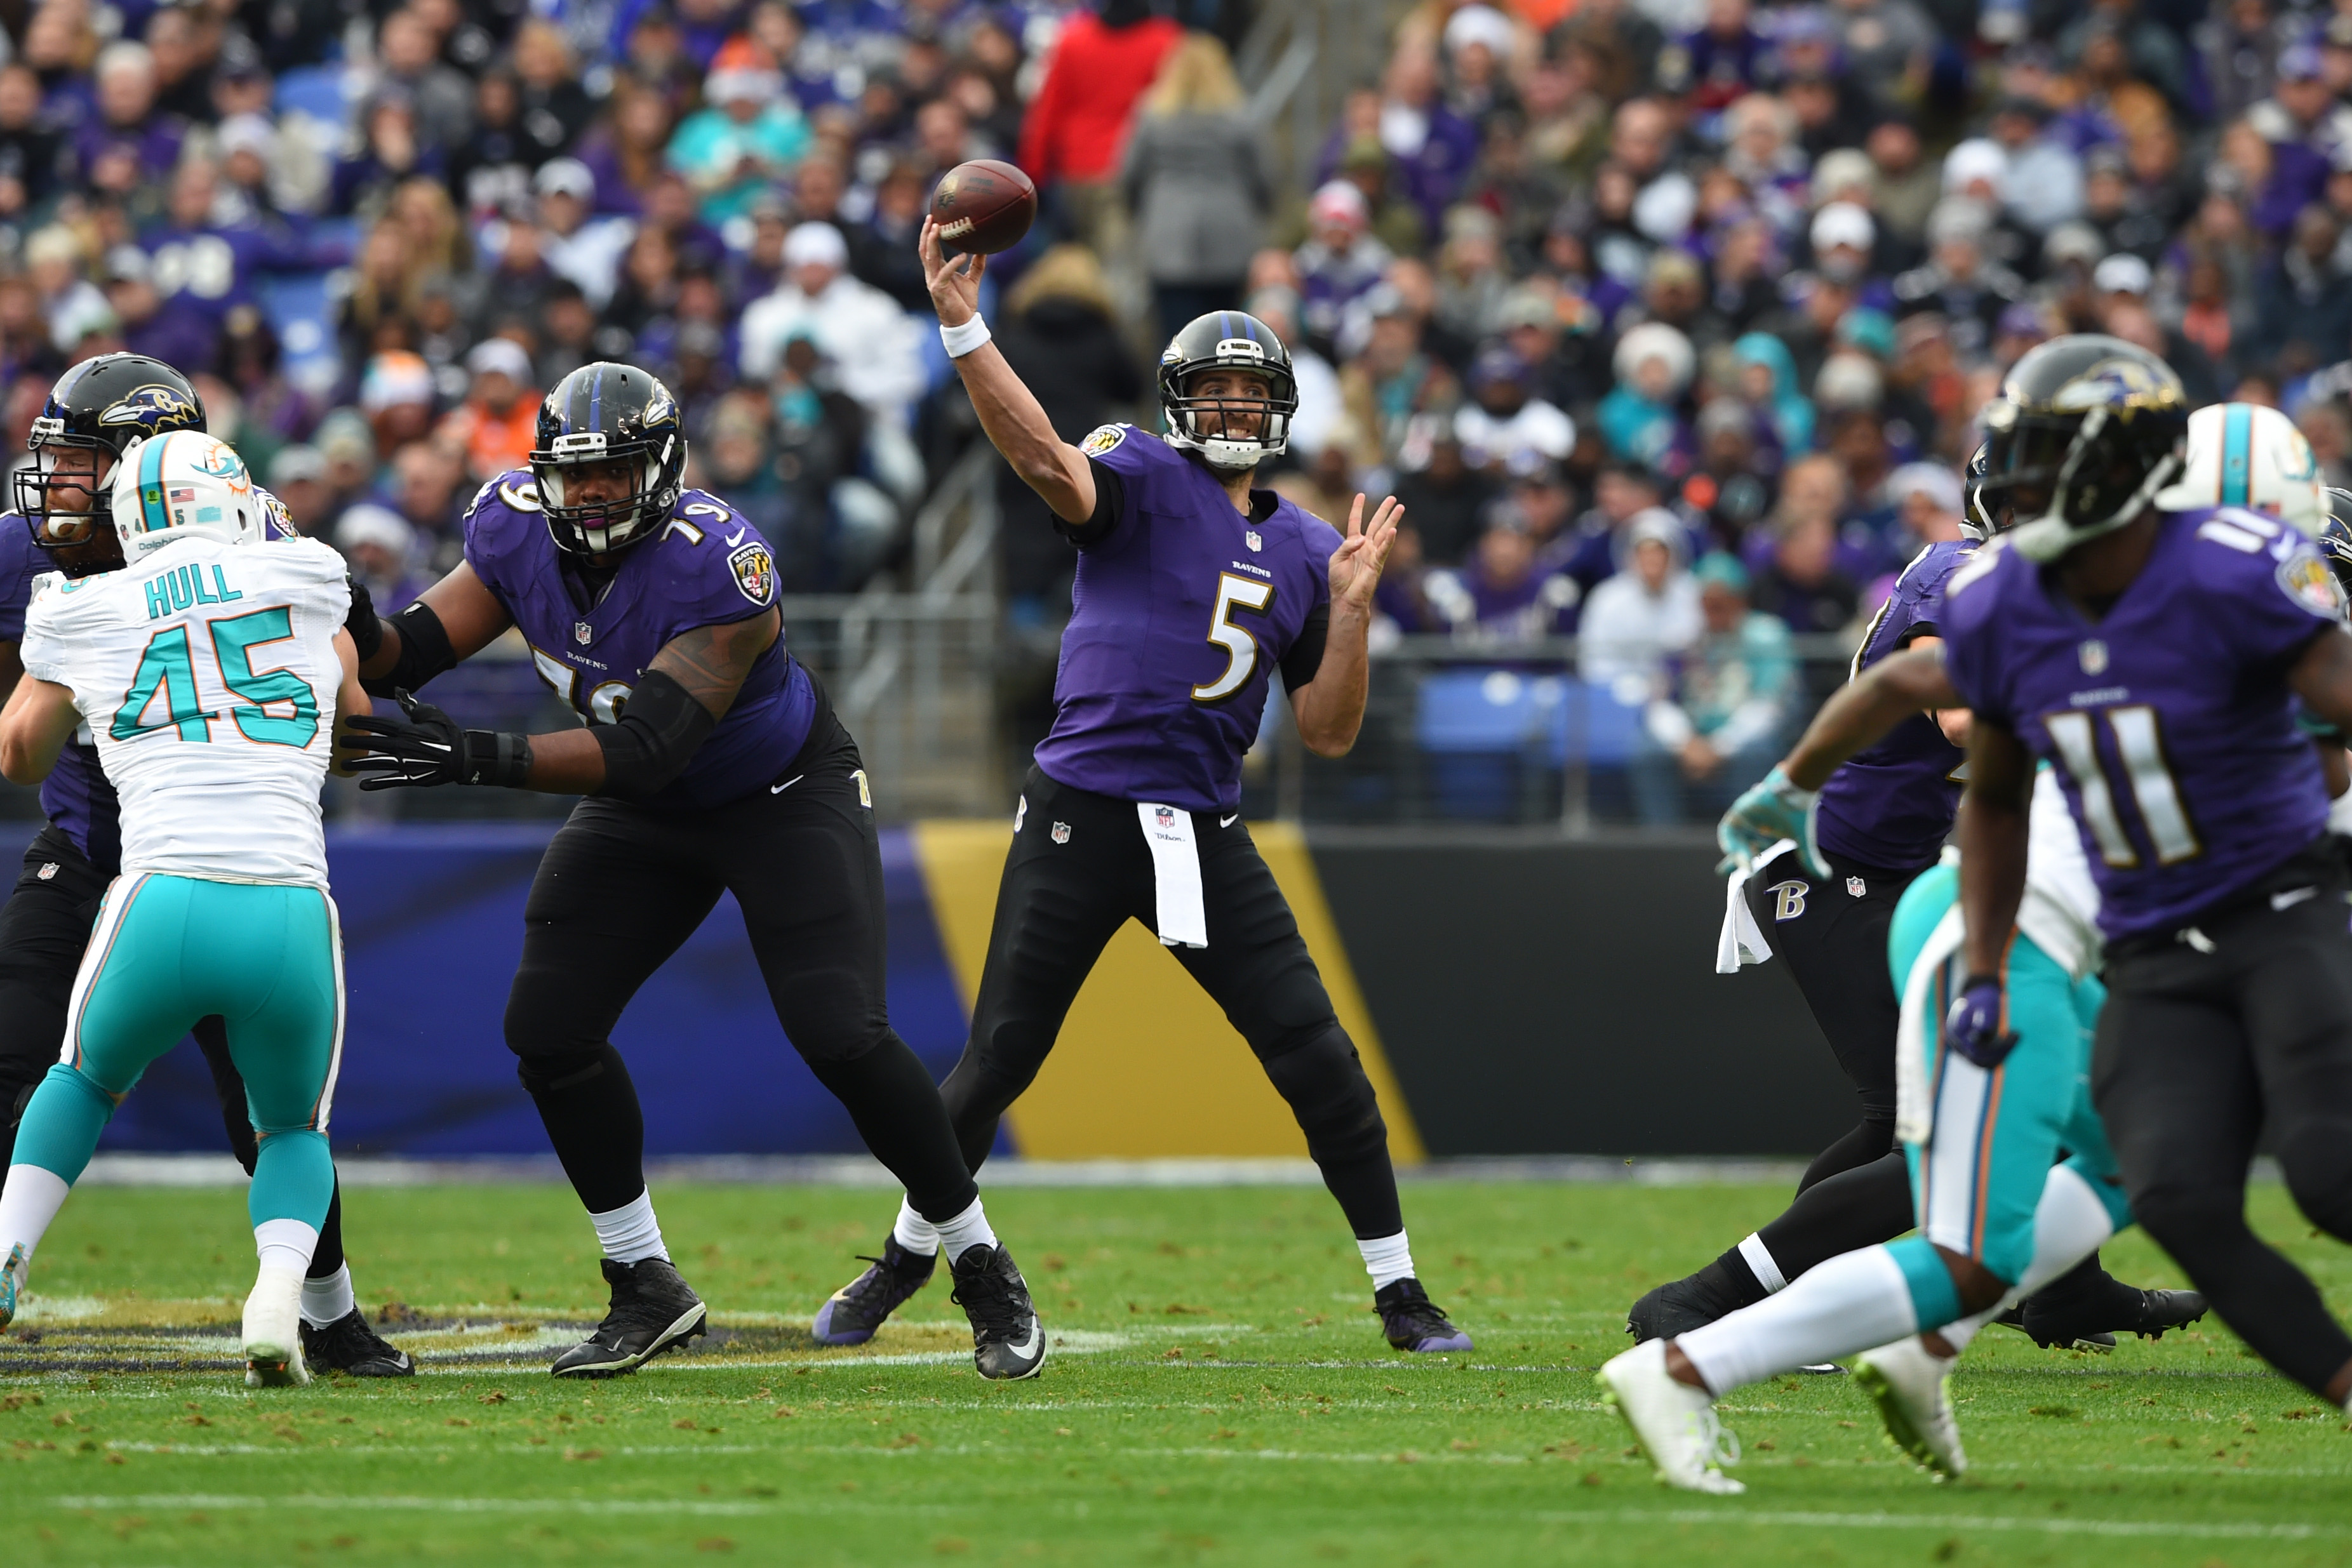 9724432-nfl-miami-dolphins-at-baltimore-ravens